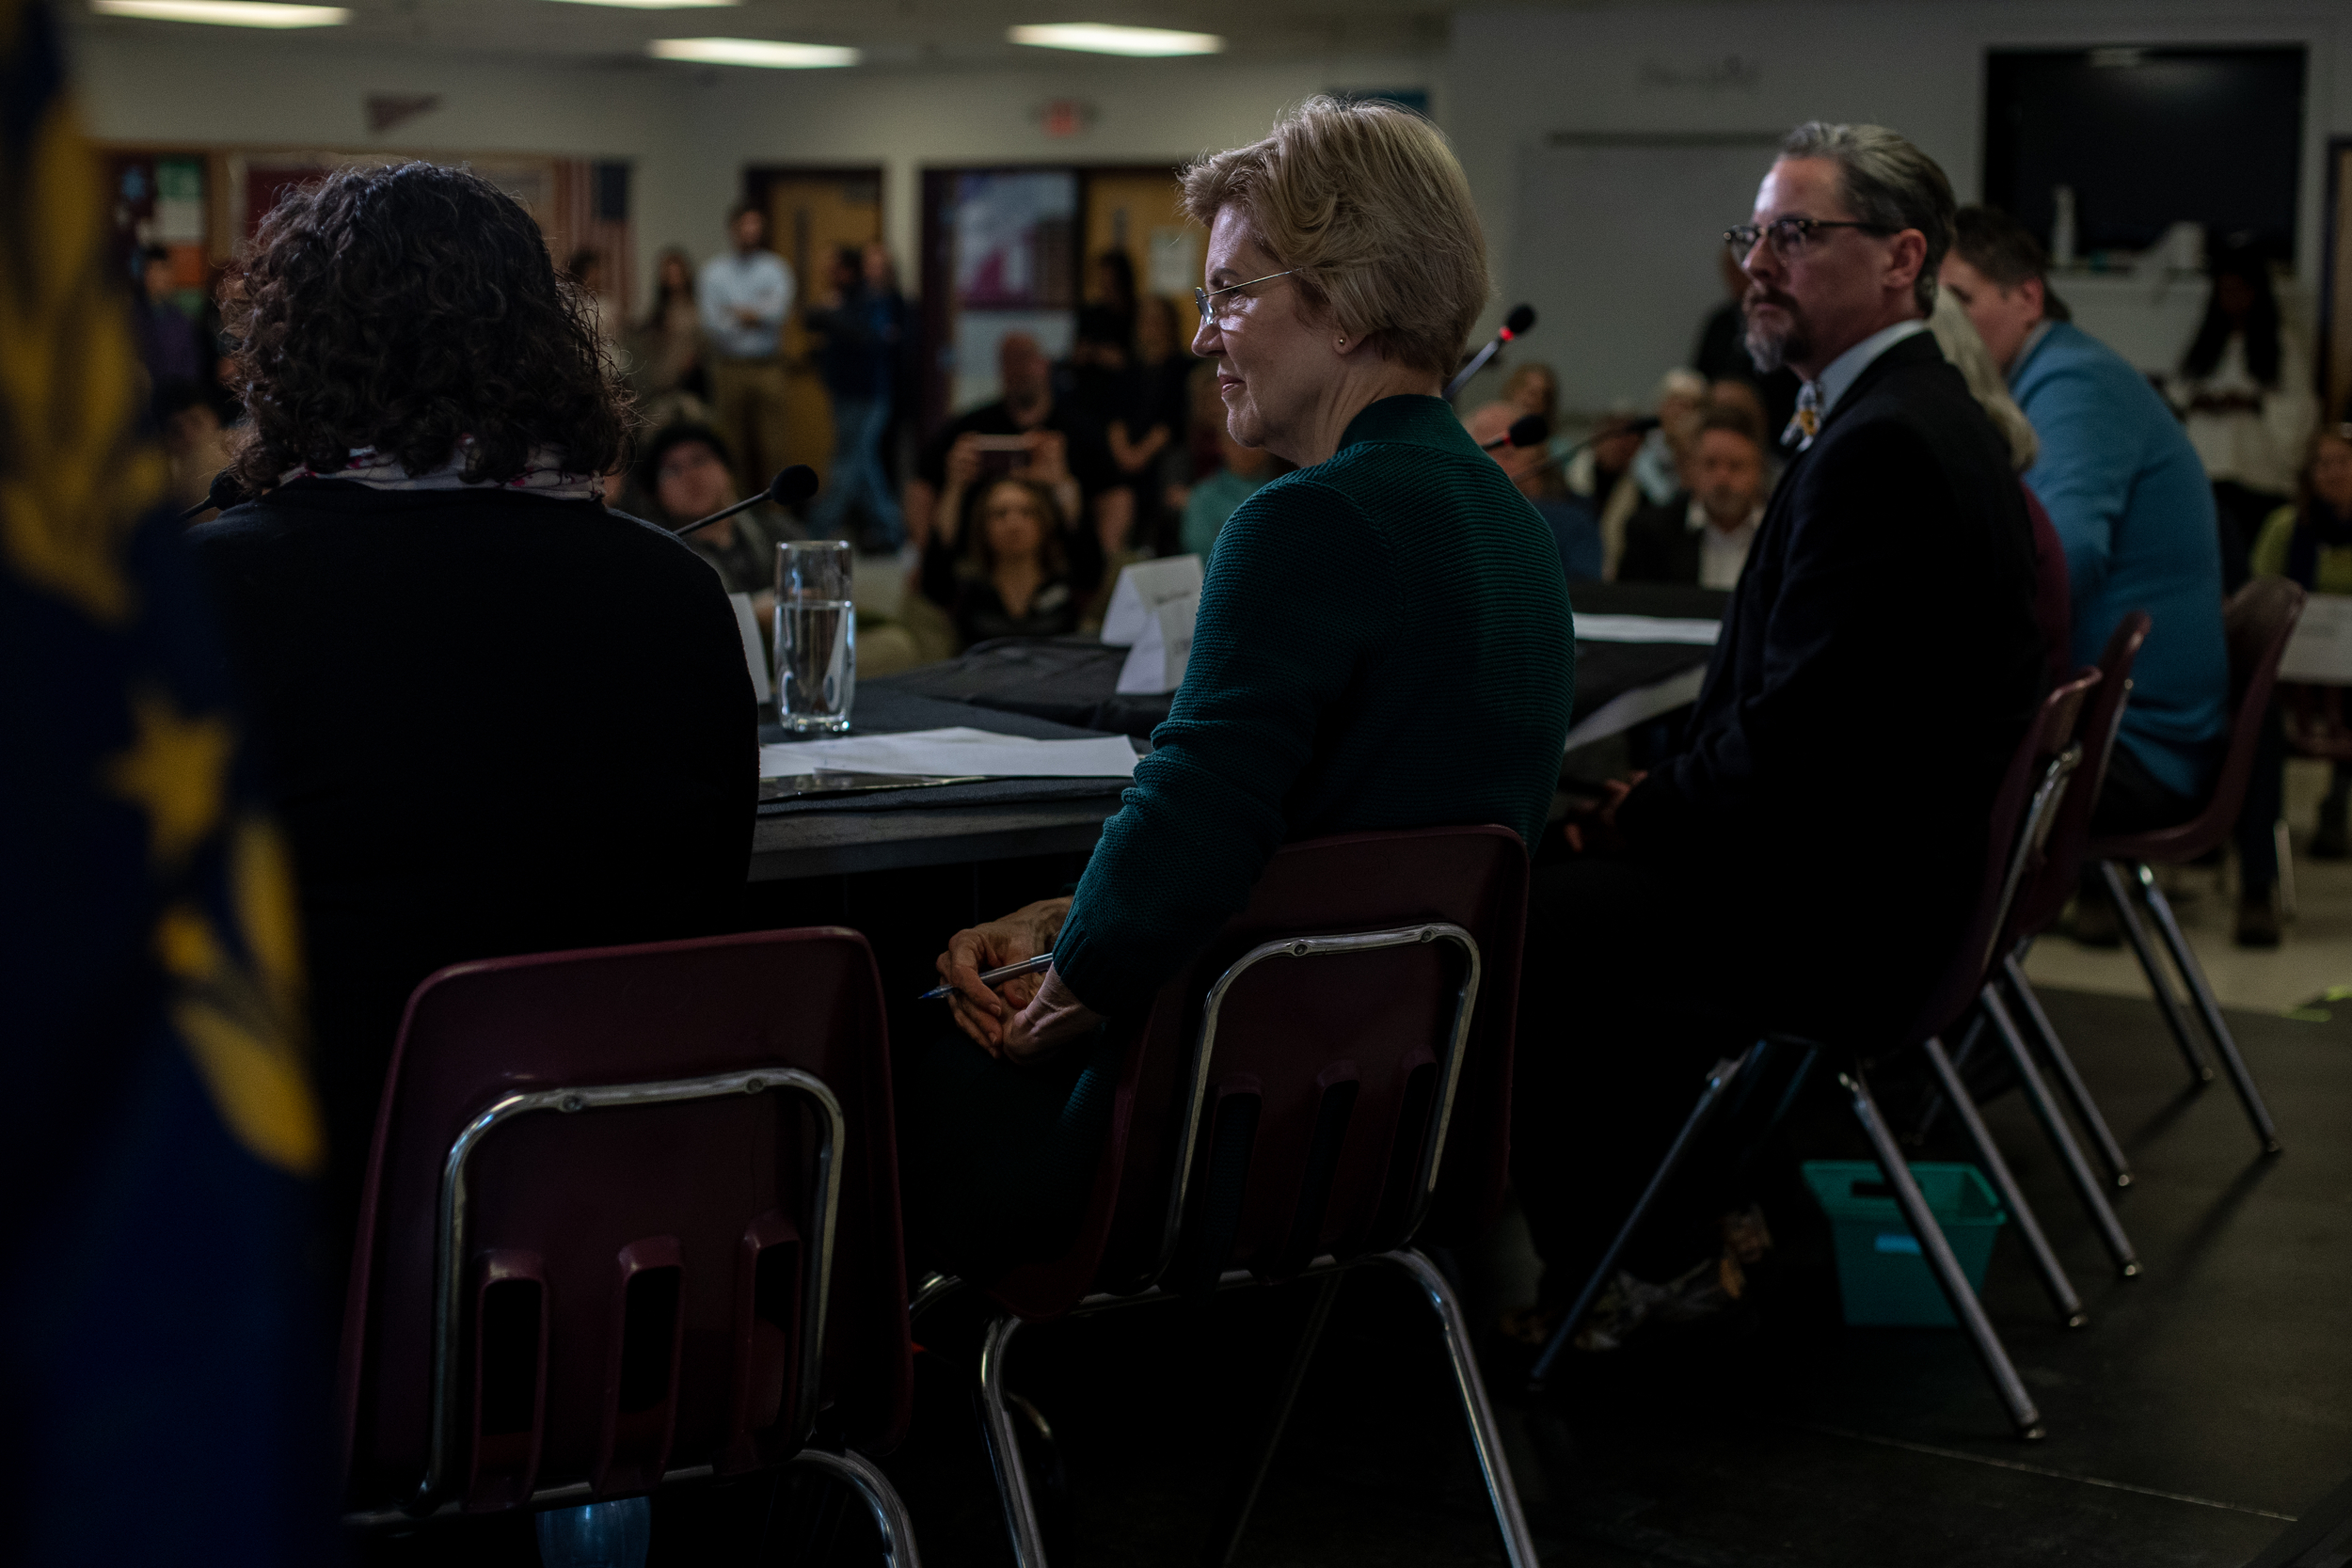 Senator Elizabeth Warren of Massachusetts holds a campaign stop called 'Community Conversations with Elizabeth Warren on the Opioid Crisis' at the Littleton High School in Littleton, New Hampshire, Saturday, March 23, 2019. According to the National Institute on Drug Abuse, New Hampshire is second in the country for highest opioid-related overdose deaths. The U.S. Department of Health and Human Services recently announced New Hampshire will be allocated an additional $12 million to combat the crisis.